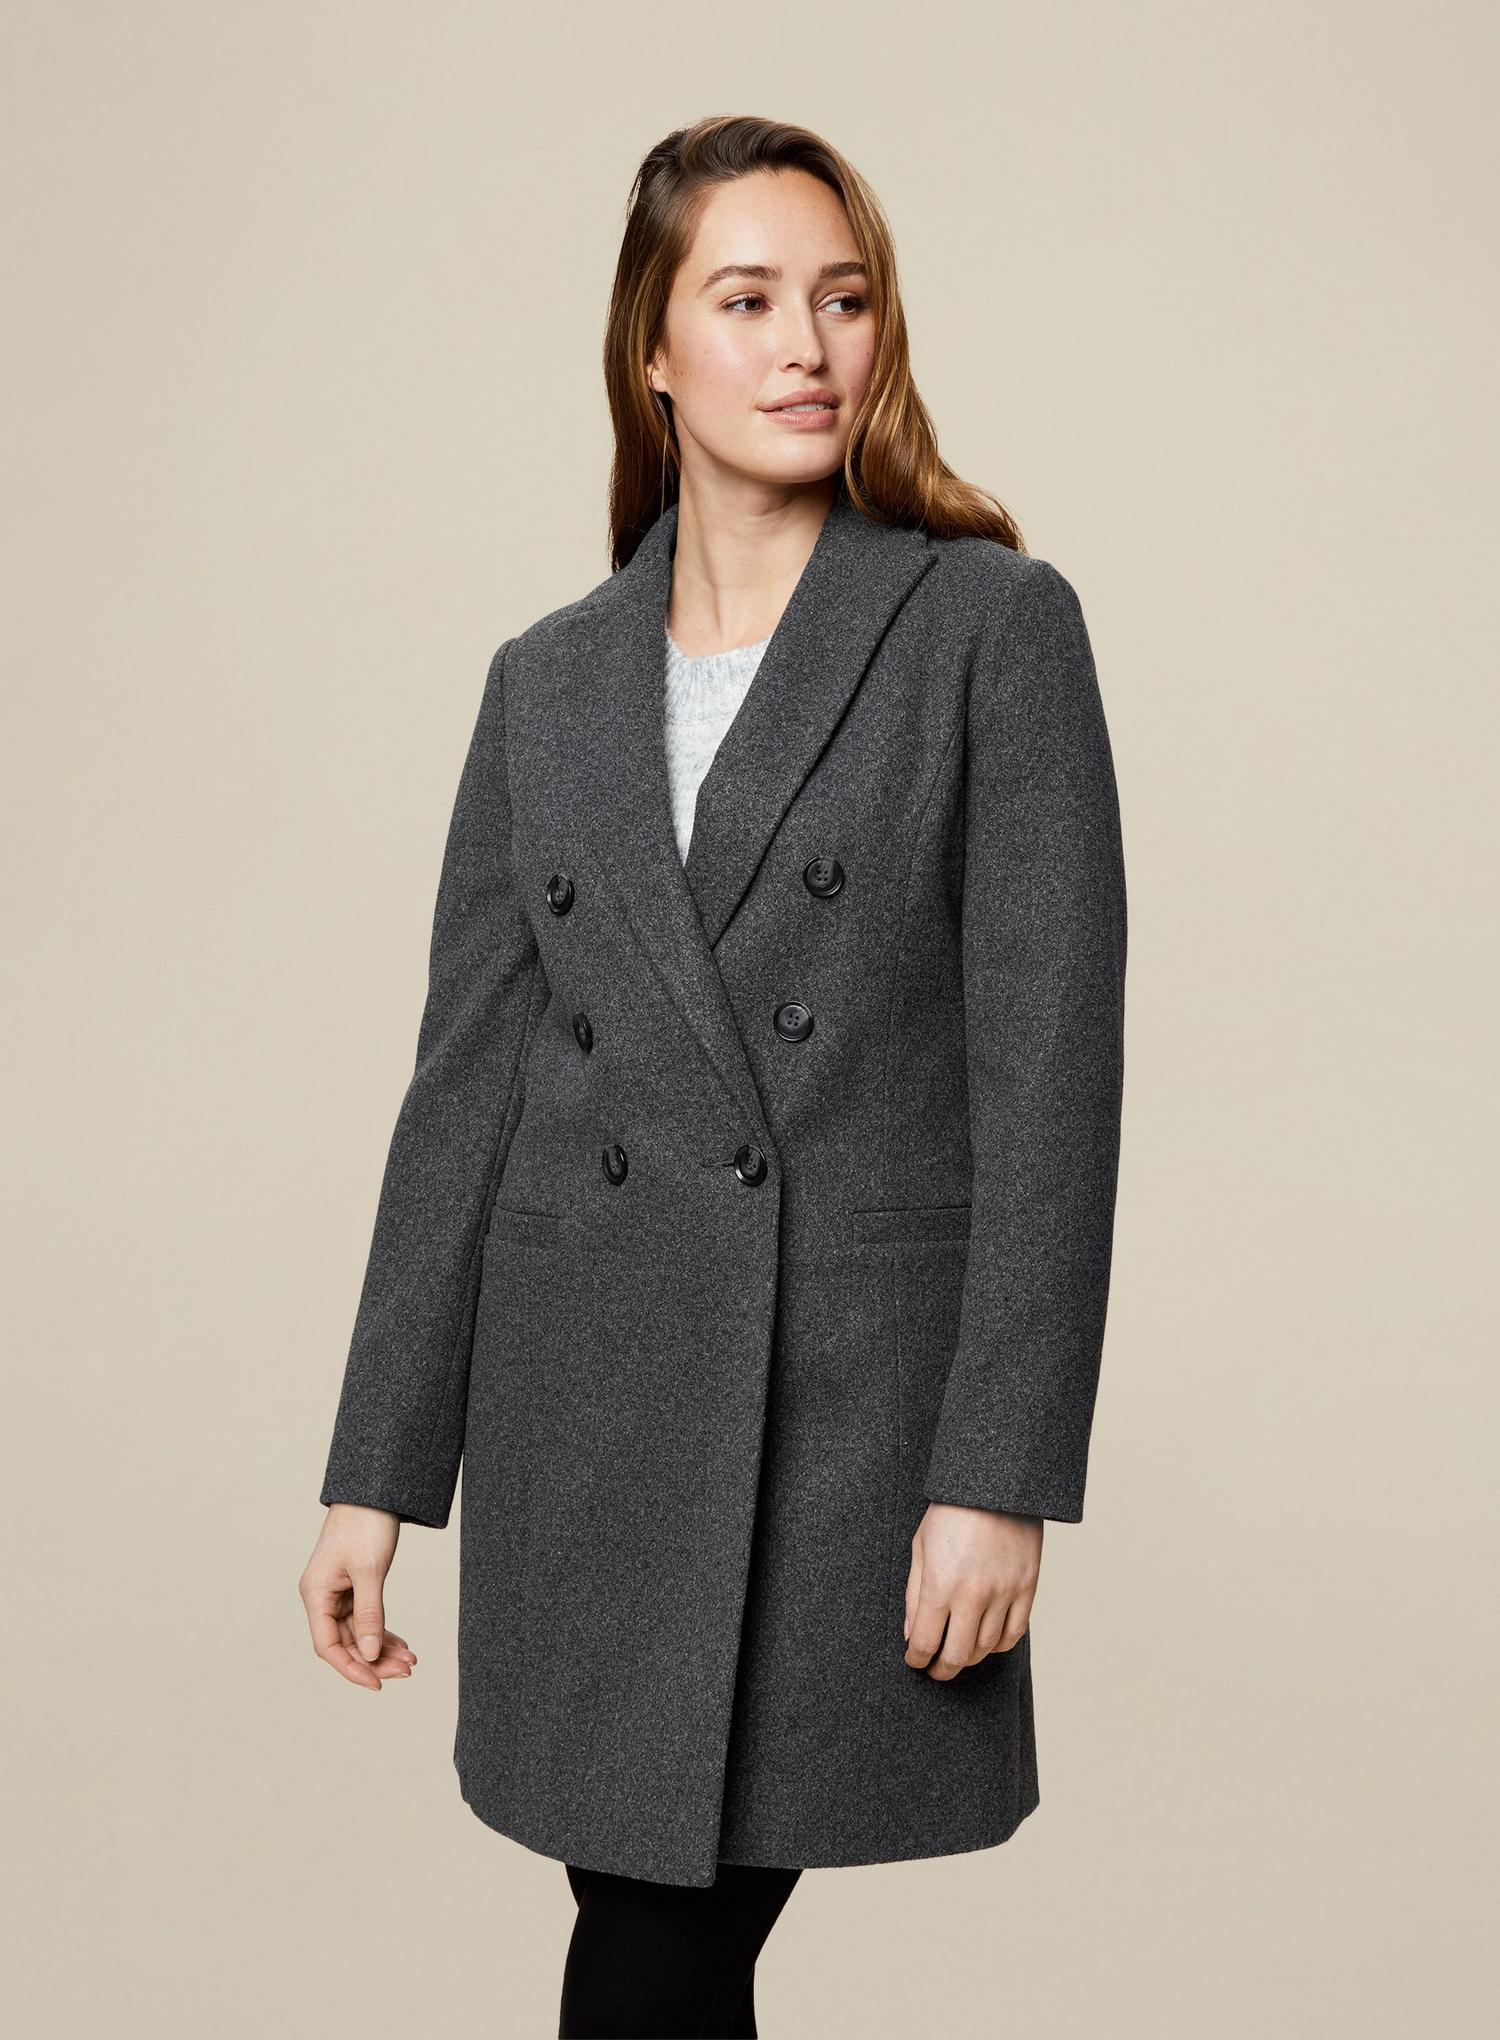 131 Grey Double Breasted Coat image number 1